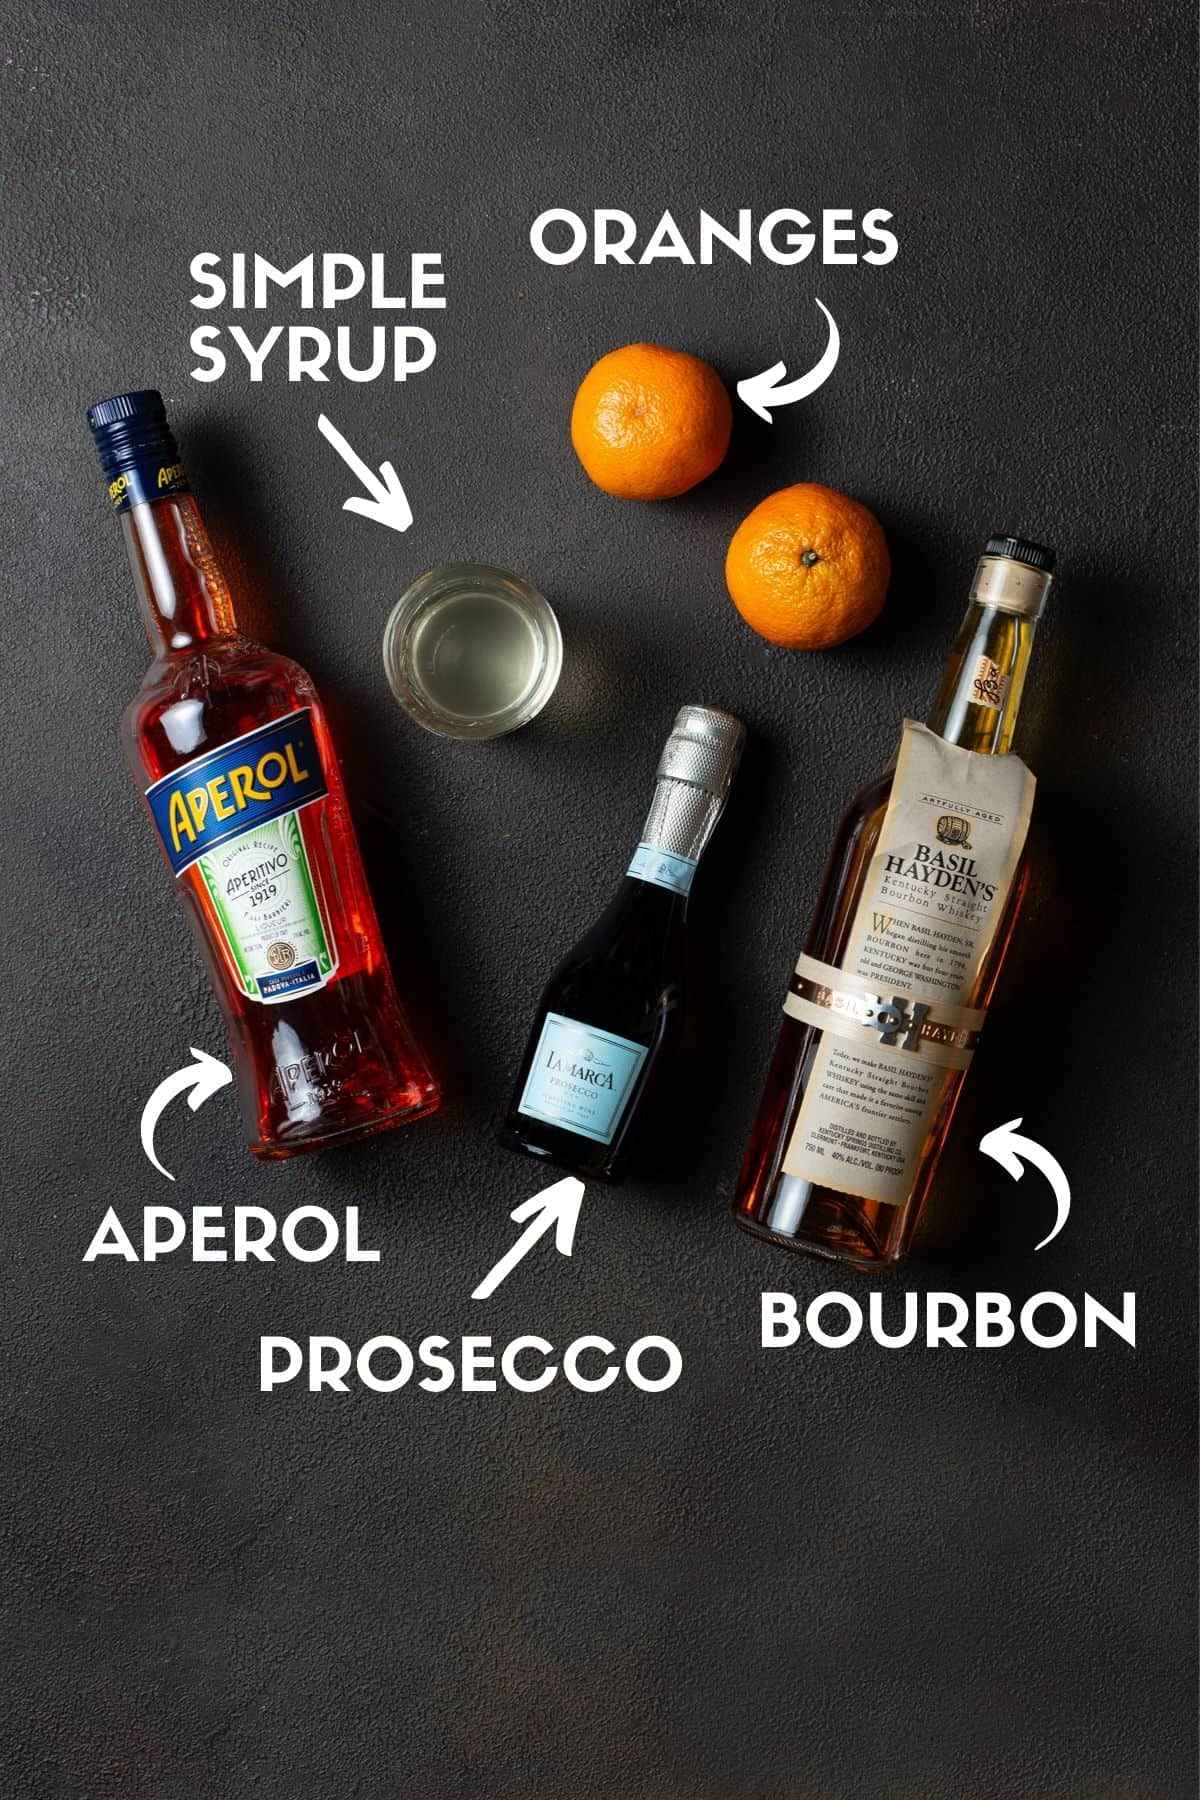 bottles of alcohol and oranges for making cocktails.